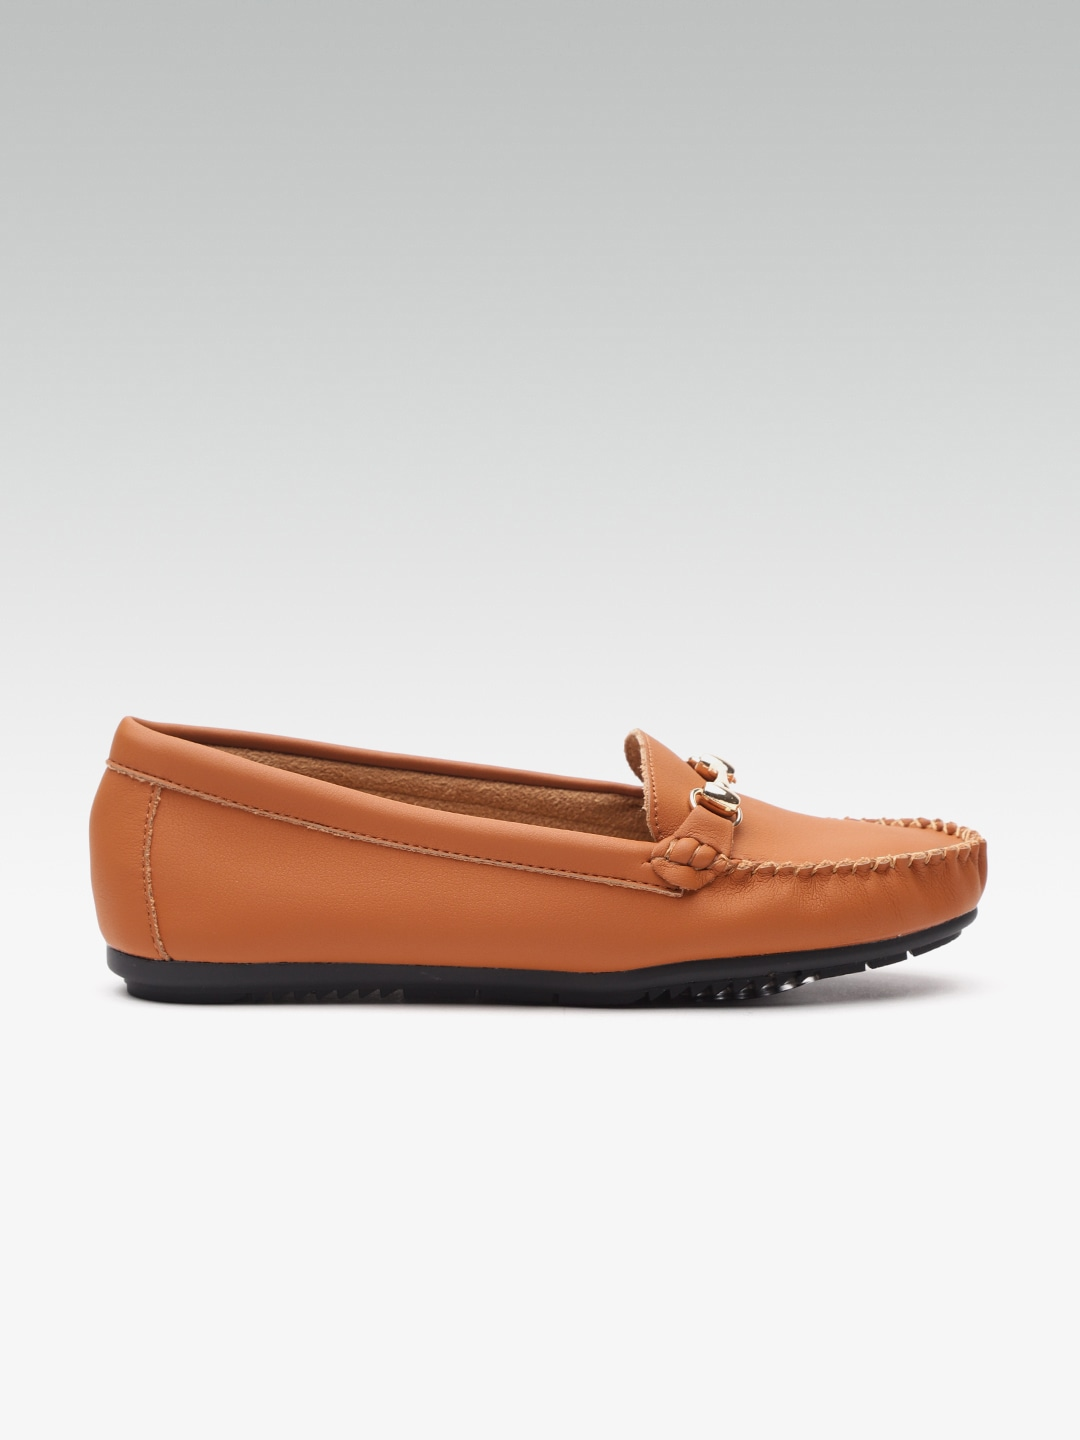 Van Heusen Women Tan Brown Loafers image